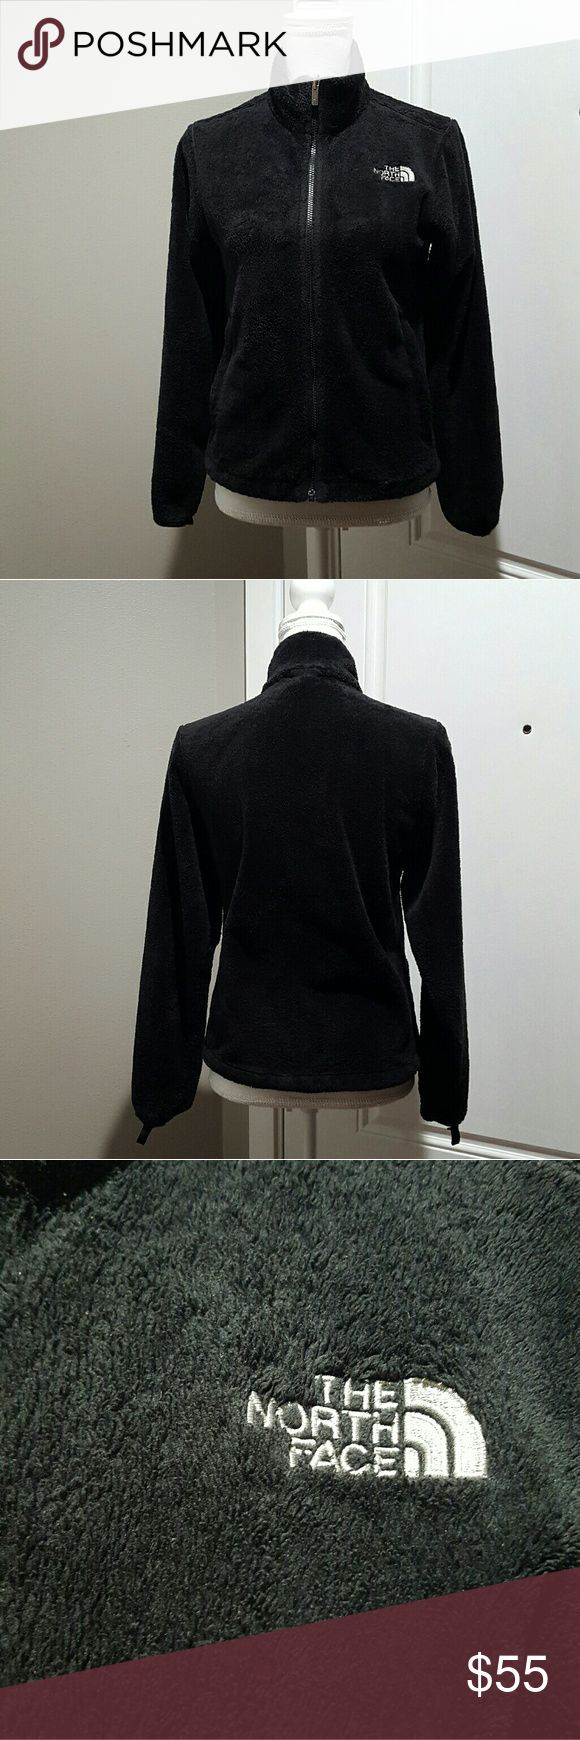 Women's black North Face fleece jacket, size small Women's black The North Face fleece jacket, size small.  No stains or tares. This fleece is a little longer then the normal North Face fleece jackets. The North Face Jackets & Coats